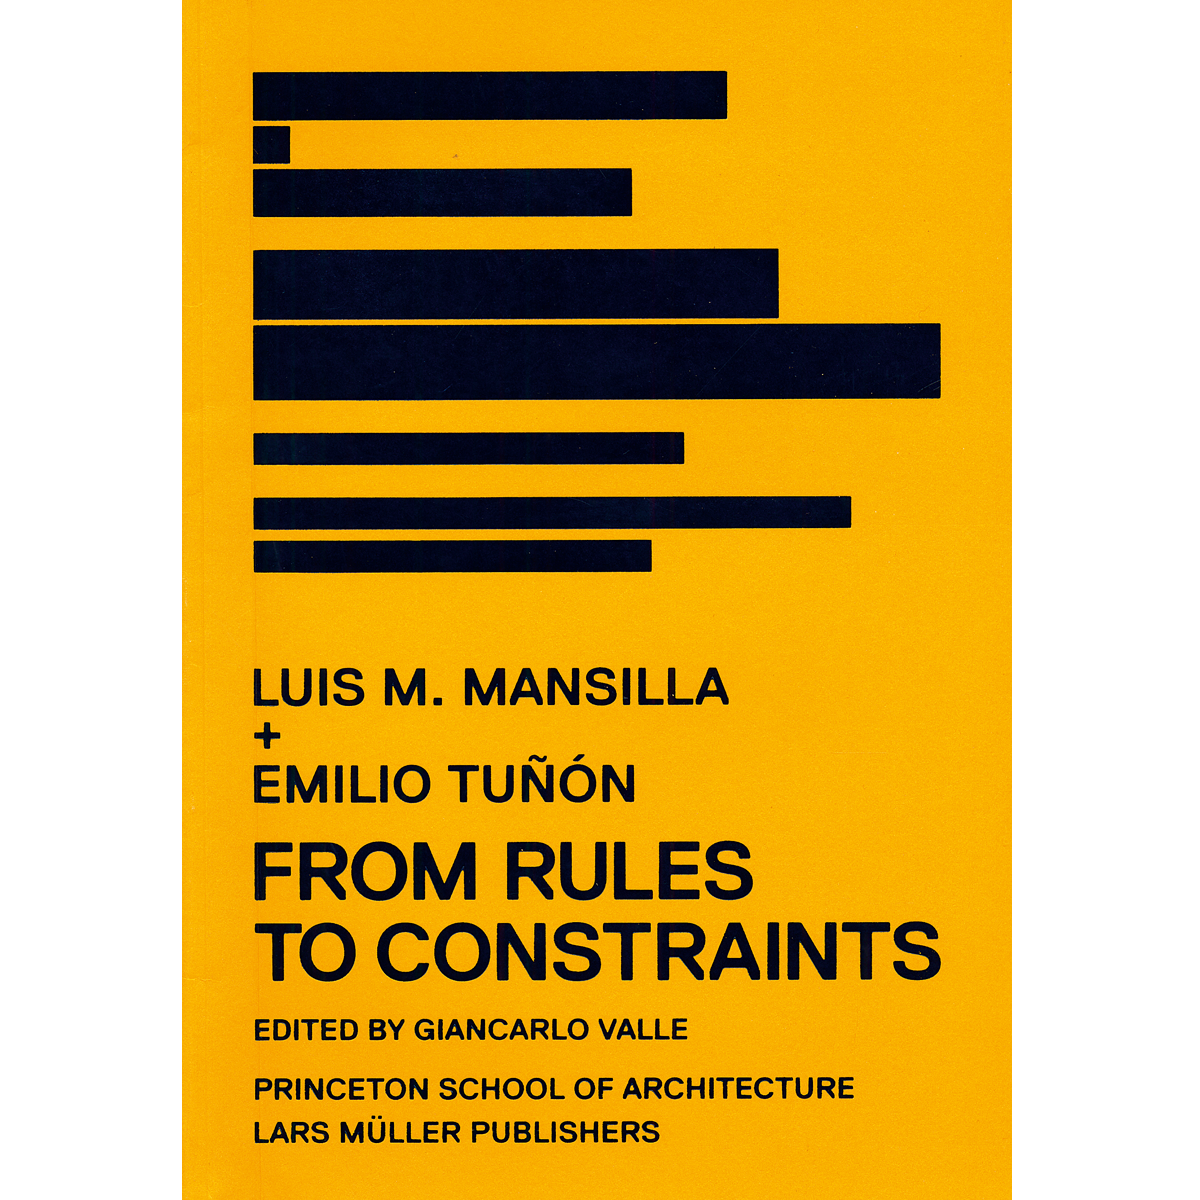 From Rules to Constraints